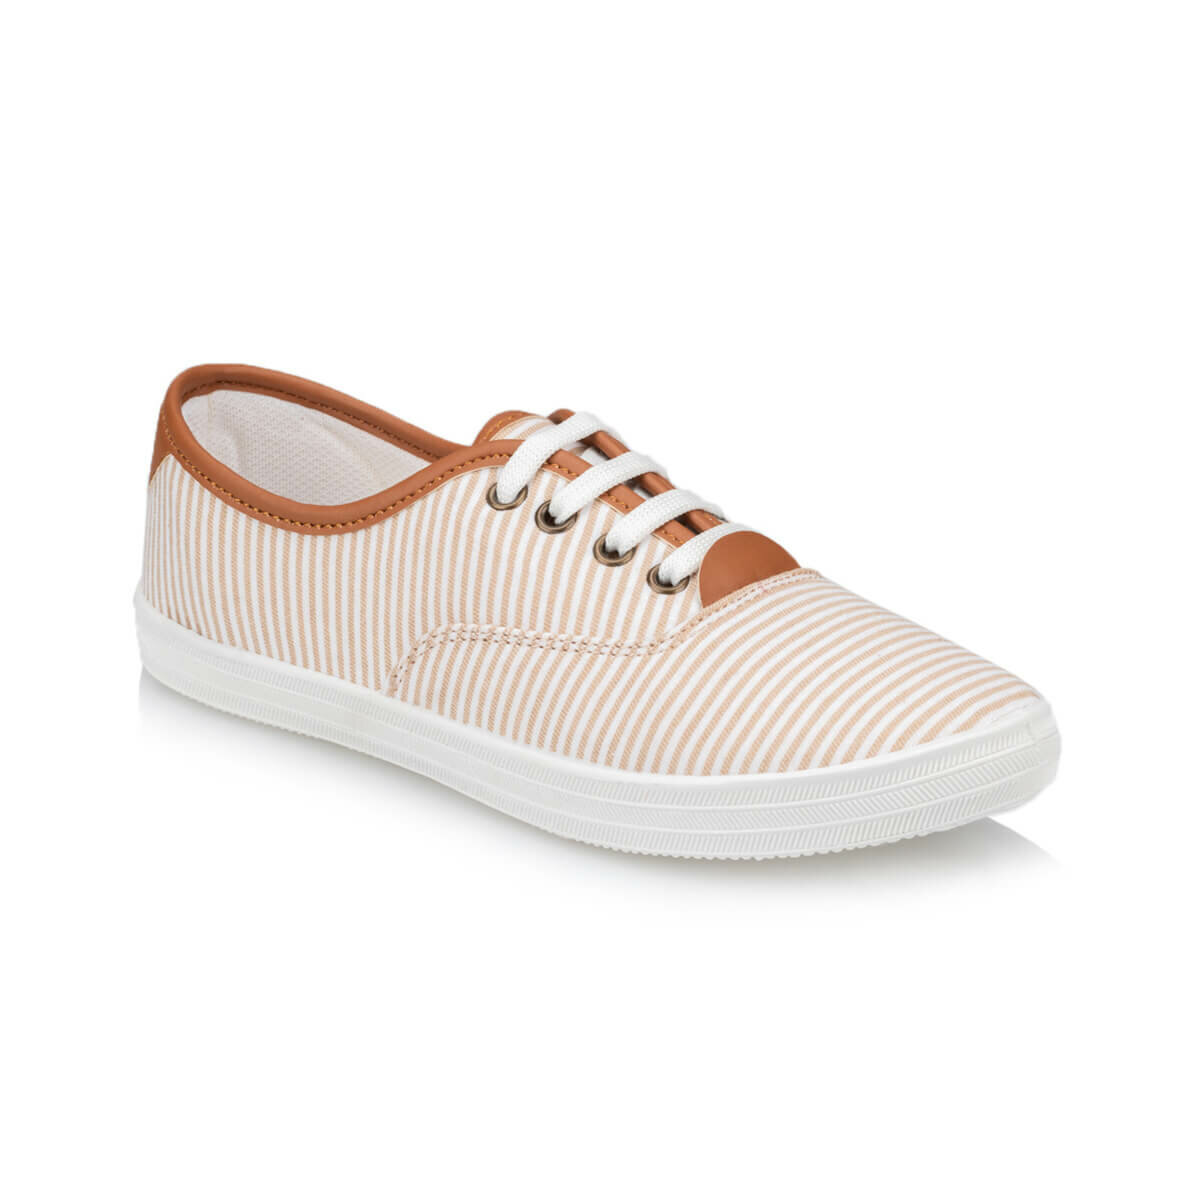 FLO 91. 313439.Z Beige Women 'S Sneaker Shoes Polaris